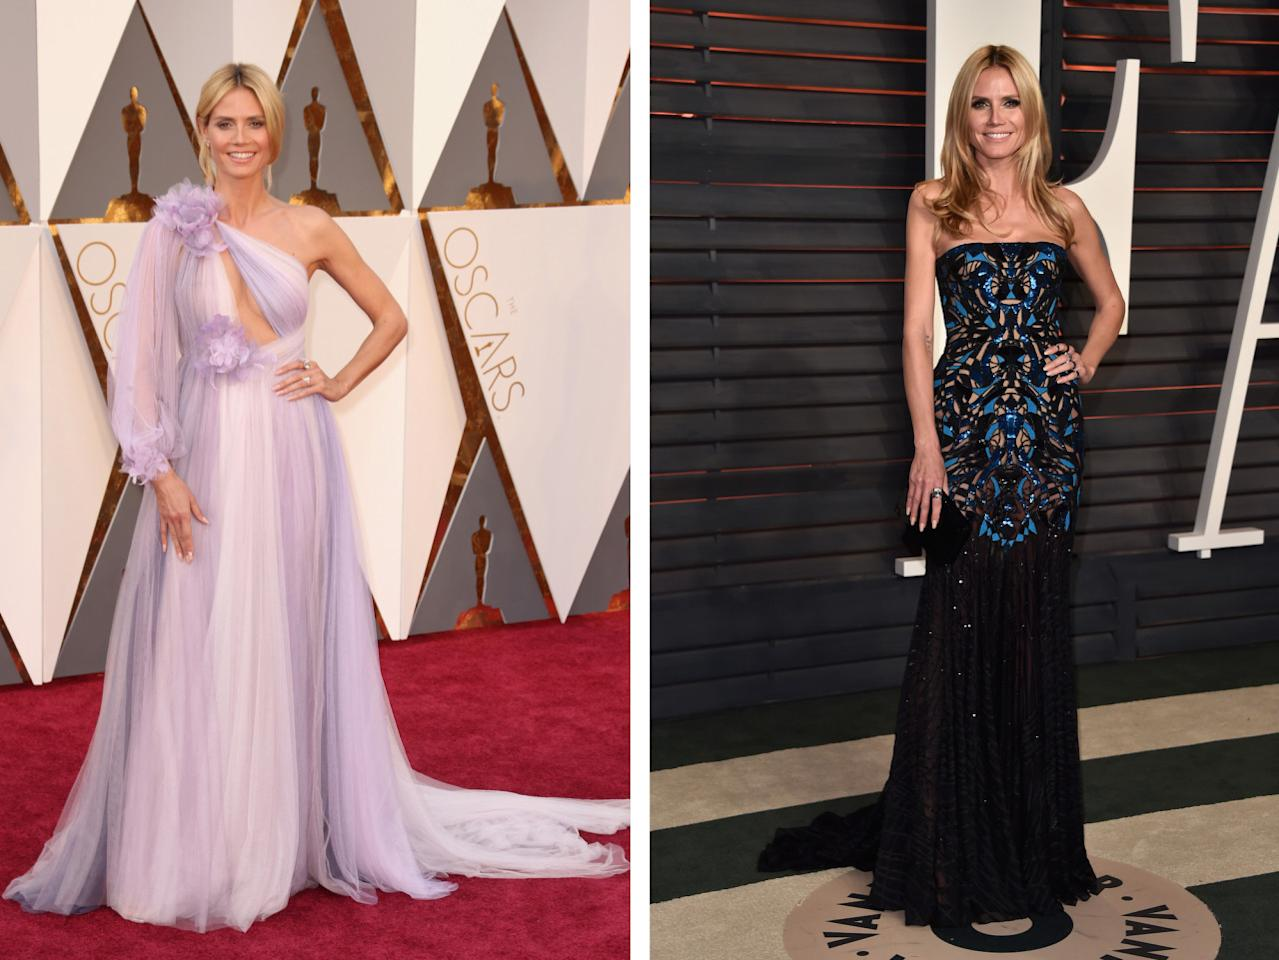 <p>Heidi Klum found herself on Worst Dressed lists for wearing this lilac Marchesa gown made with too much tulle. But the afterparty was her time for redemption, seeing as she changed into a simpler, black strapless gown from Atelier Versace. <i>(Photos: Getty Images)</i></p>